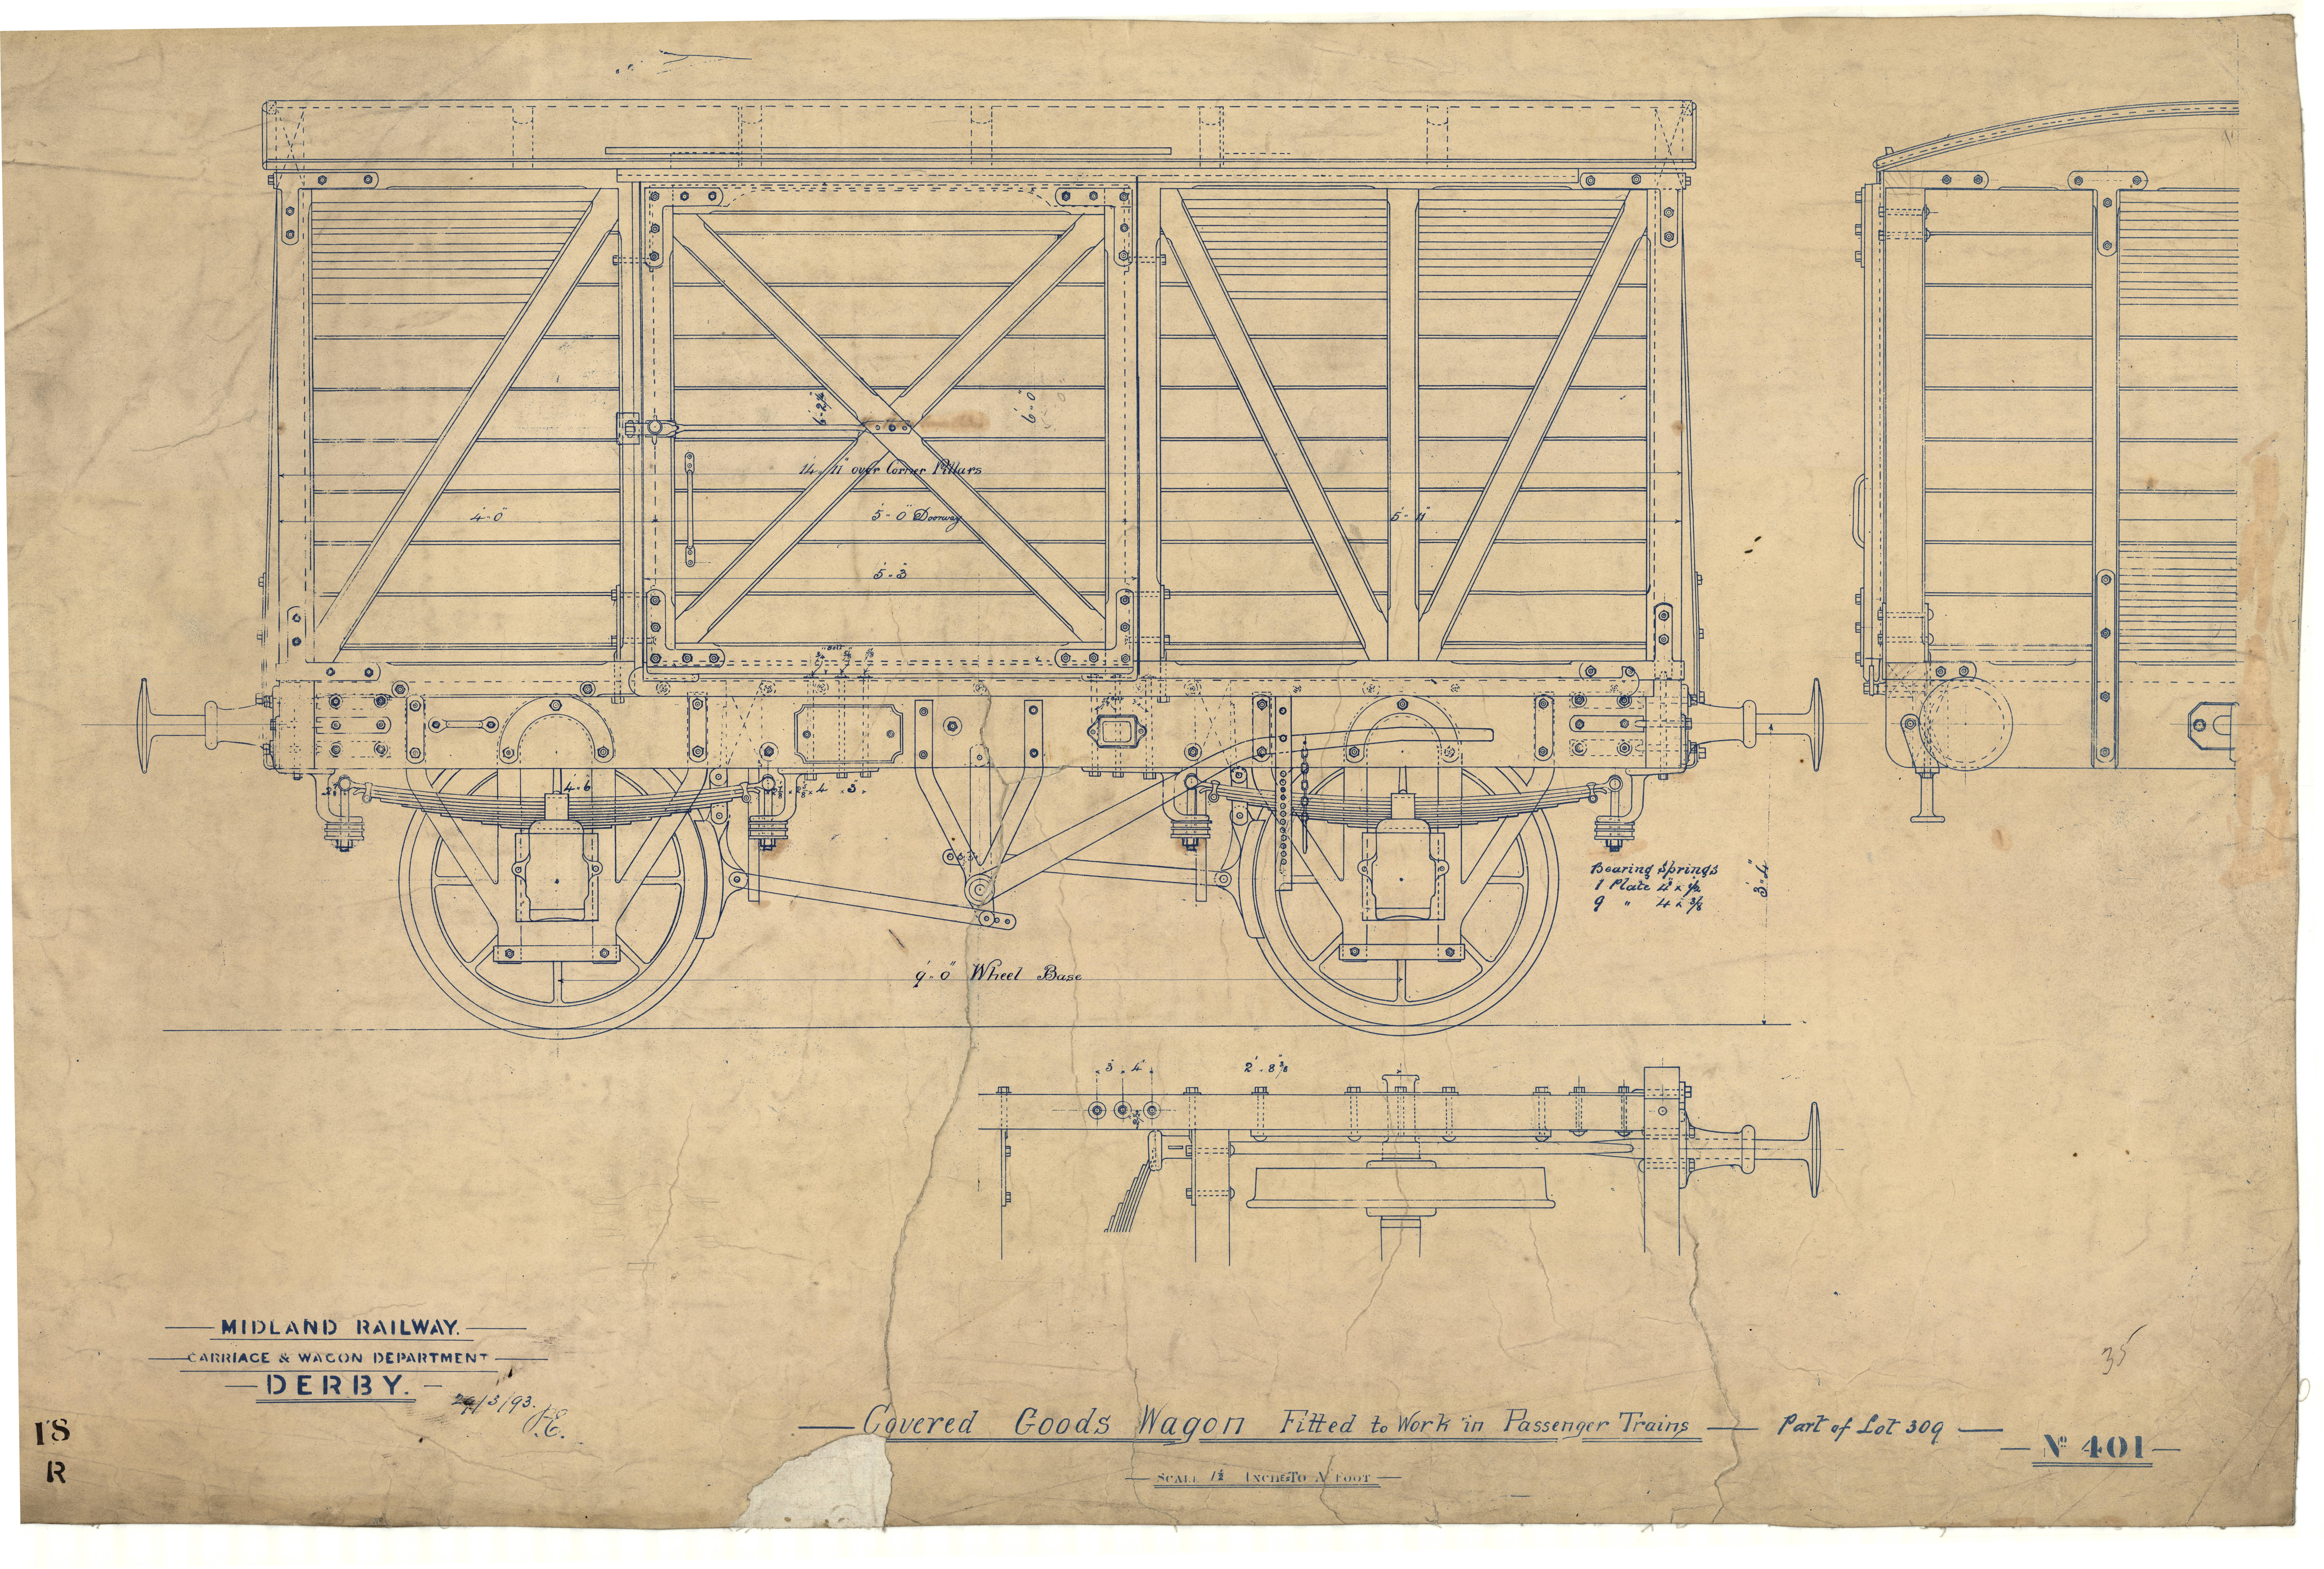 The Midland Railway Study Centre - Carriage & Wagon drawings for